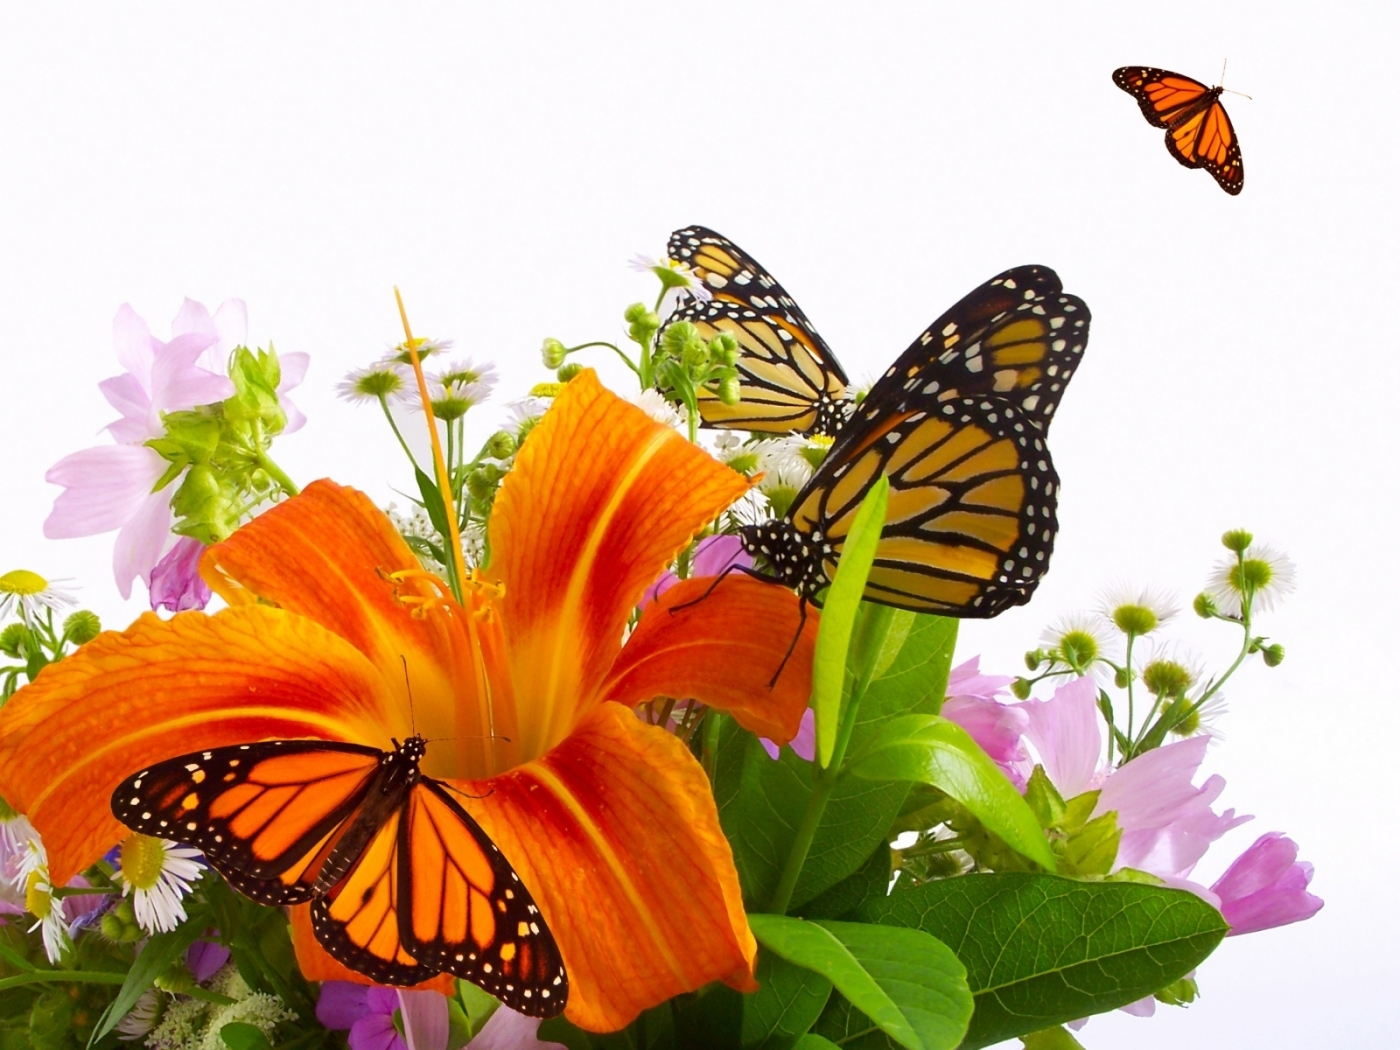 40279 download wallpaper Insects, Butterflies screensavers and pictures for free